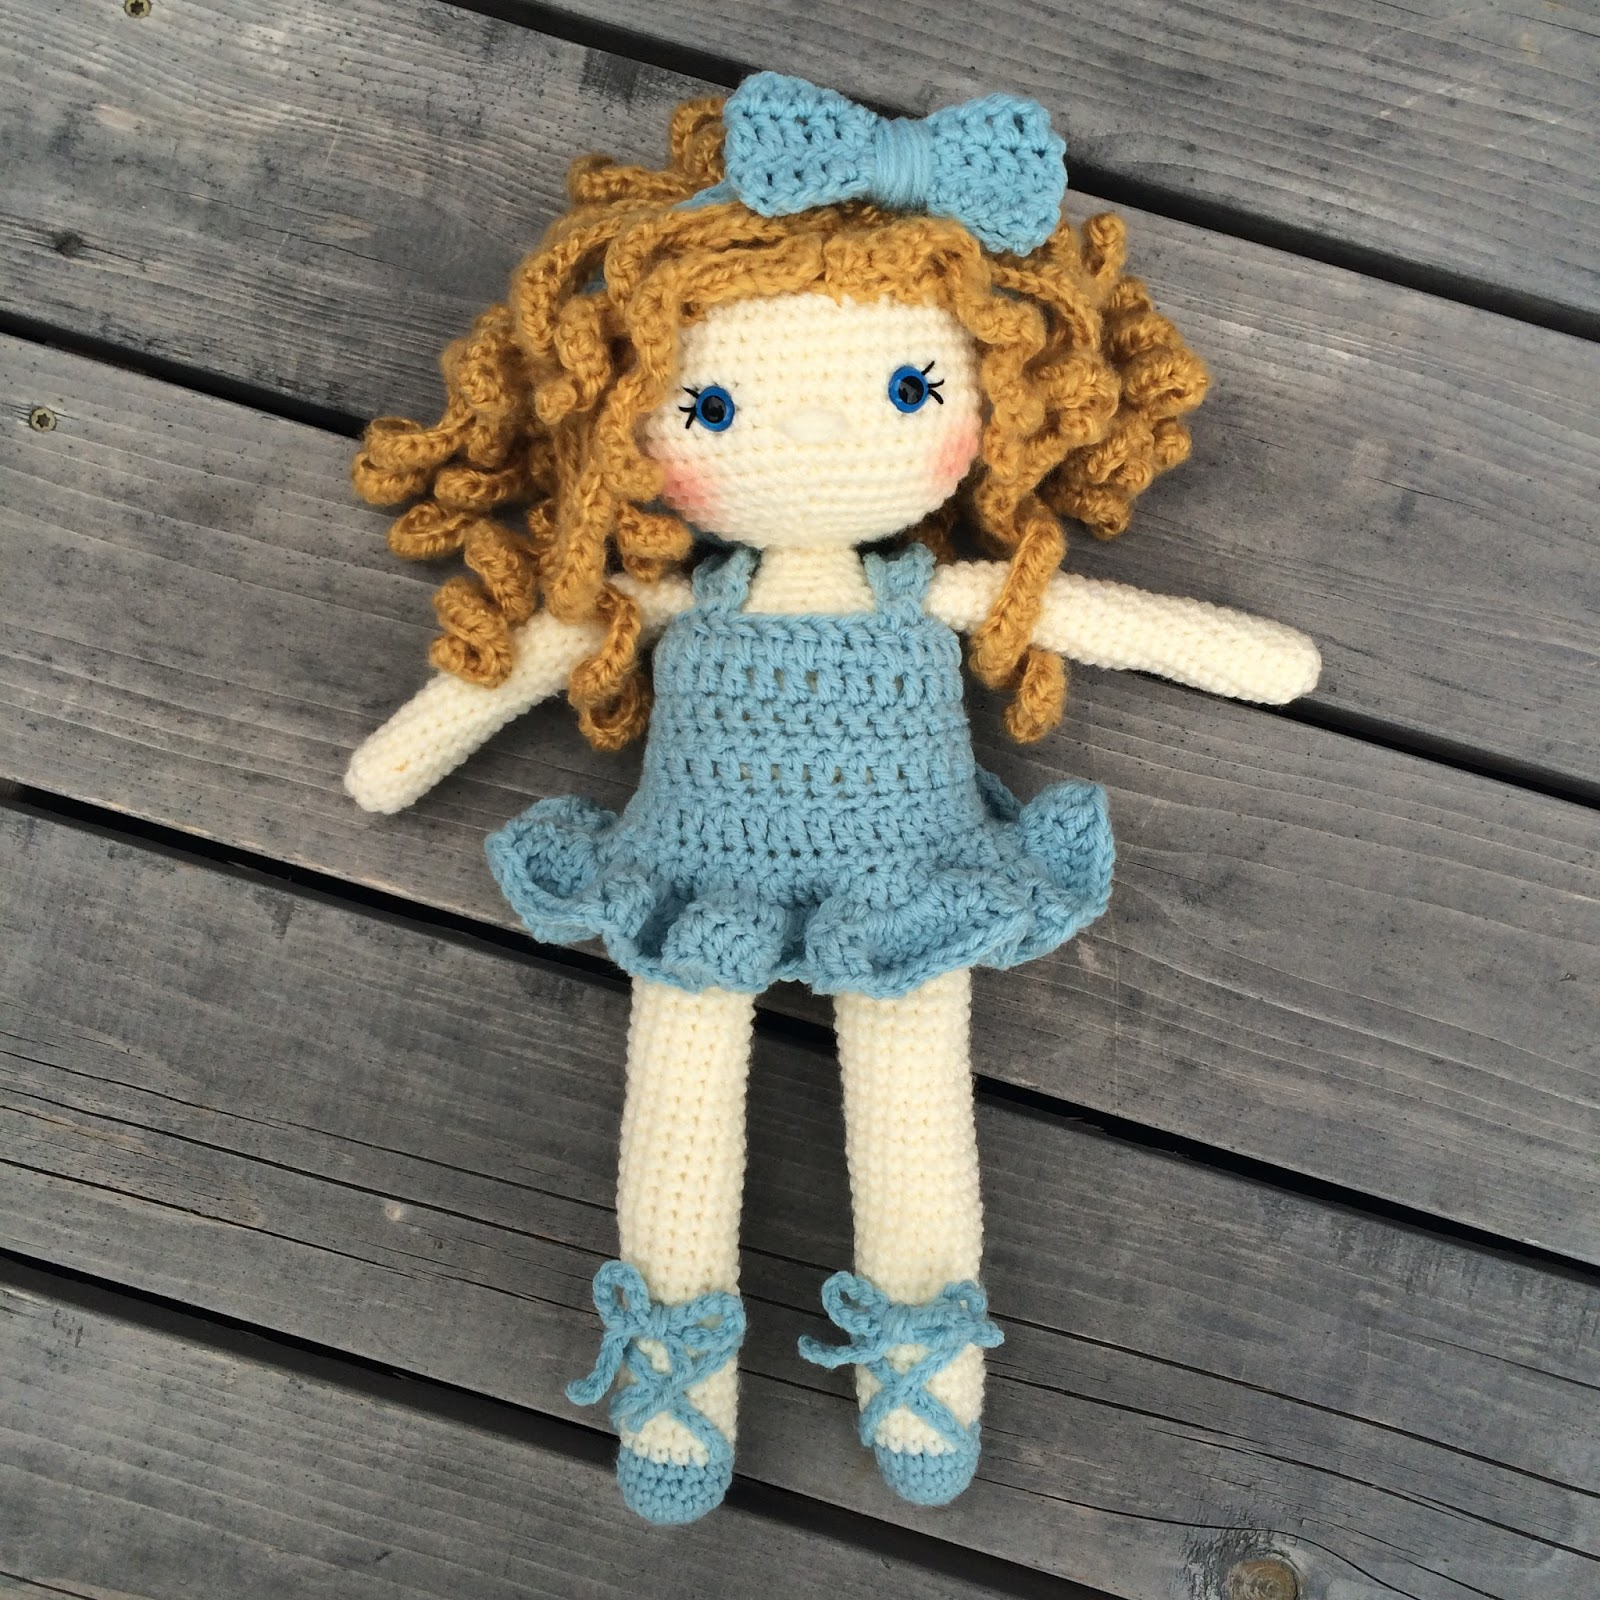 amigurumi crochet patterns free download – Salvabrani – Salvabrani ... | 1600x1600